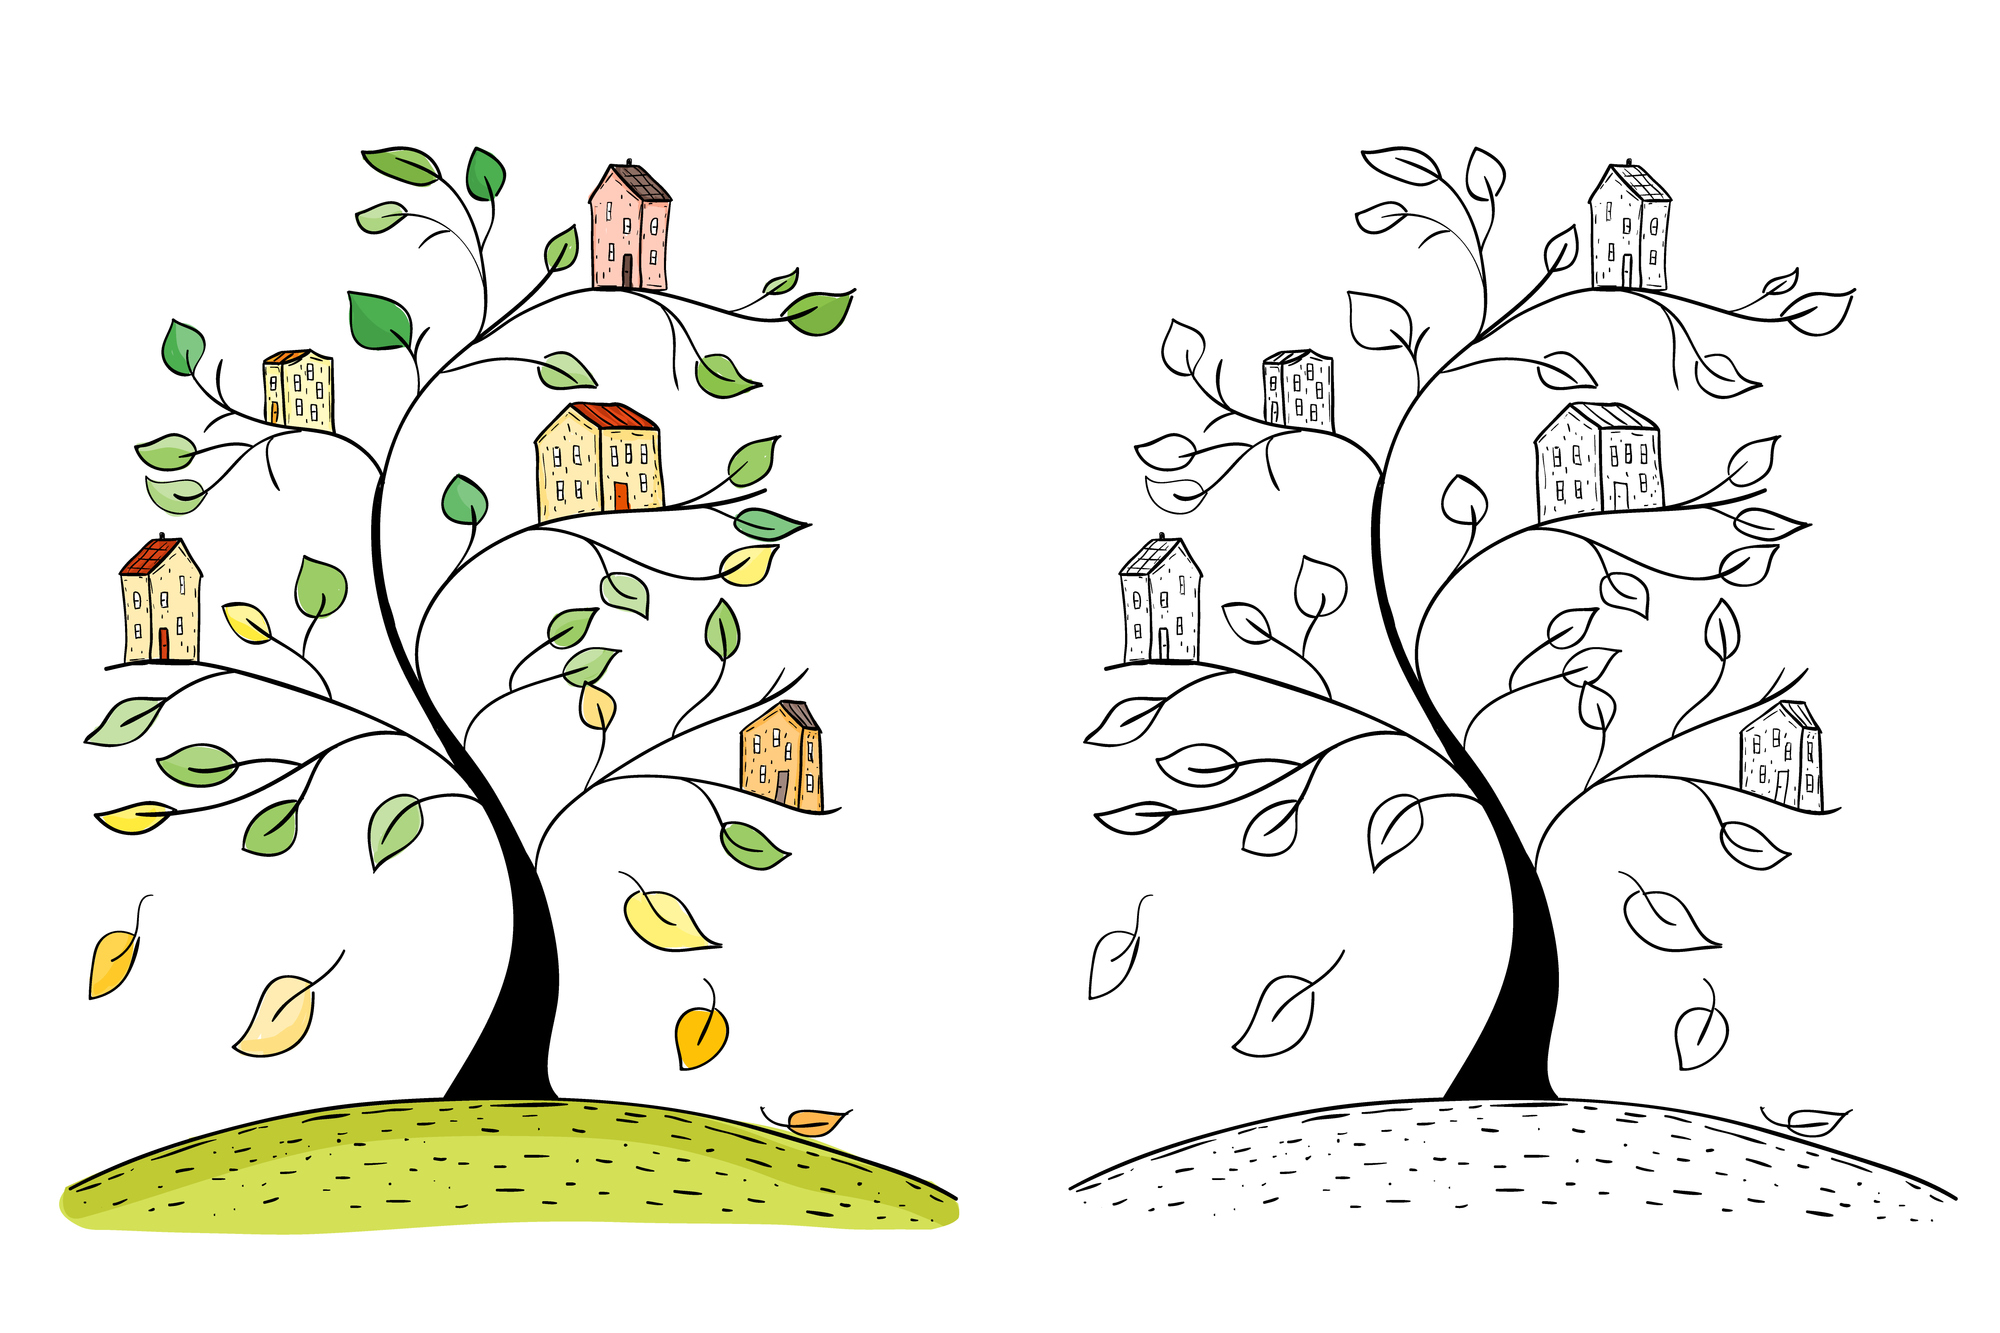 Illustration of doodle houses on tree. Drawing of village on tree branches. Hand drawn sketch.